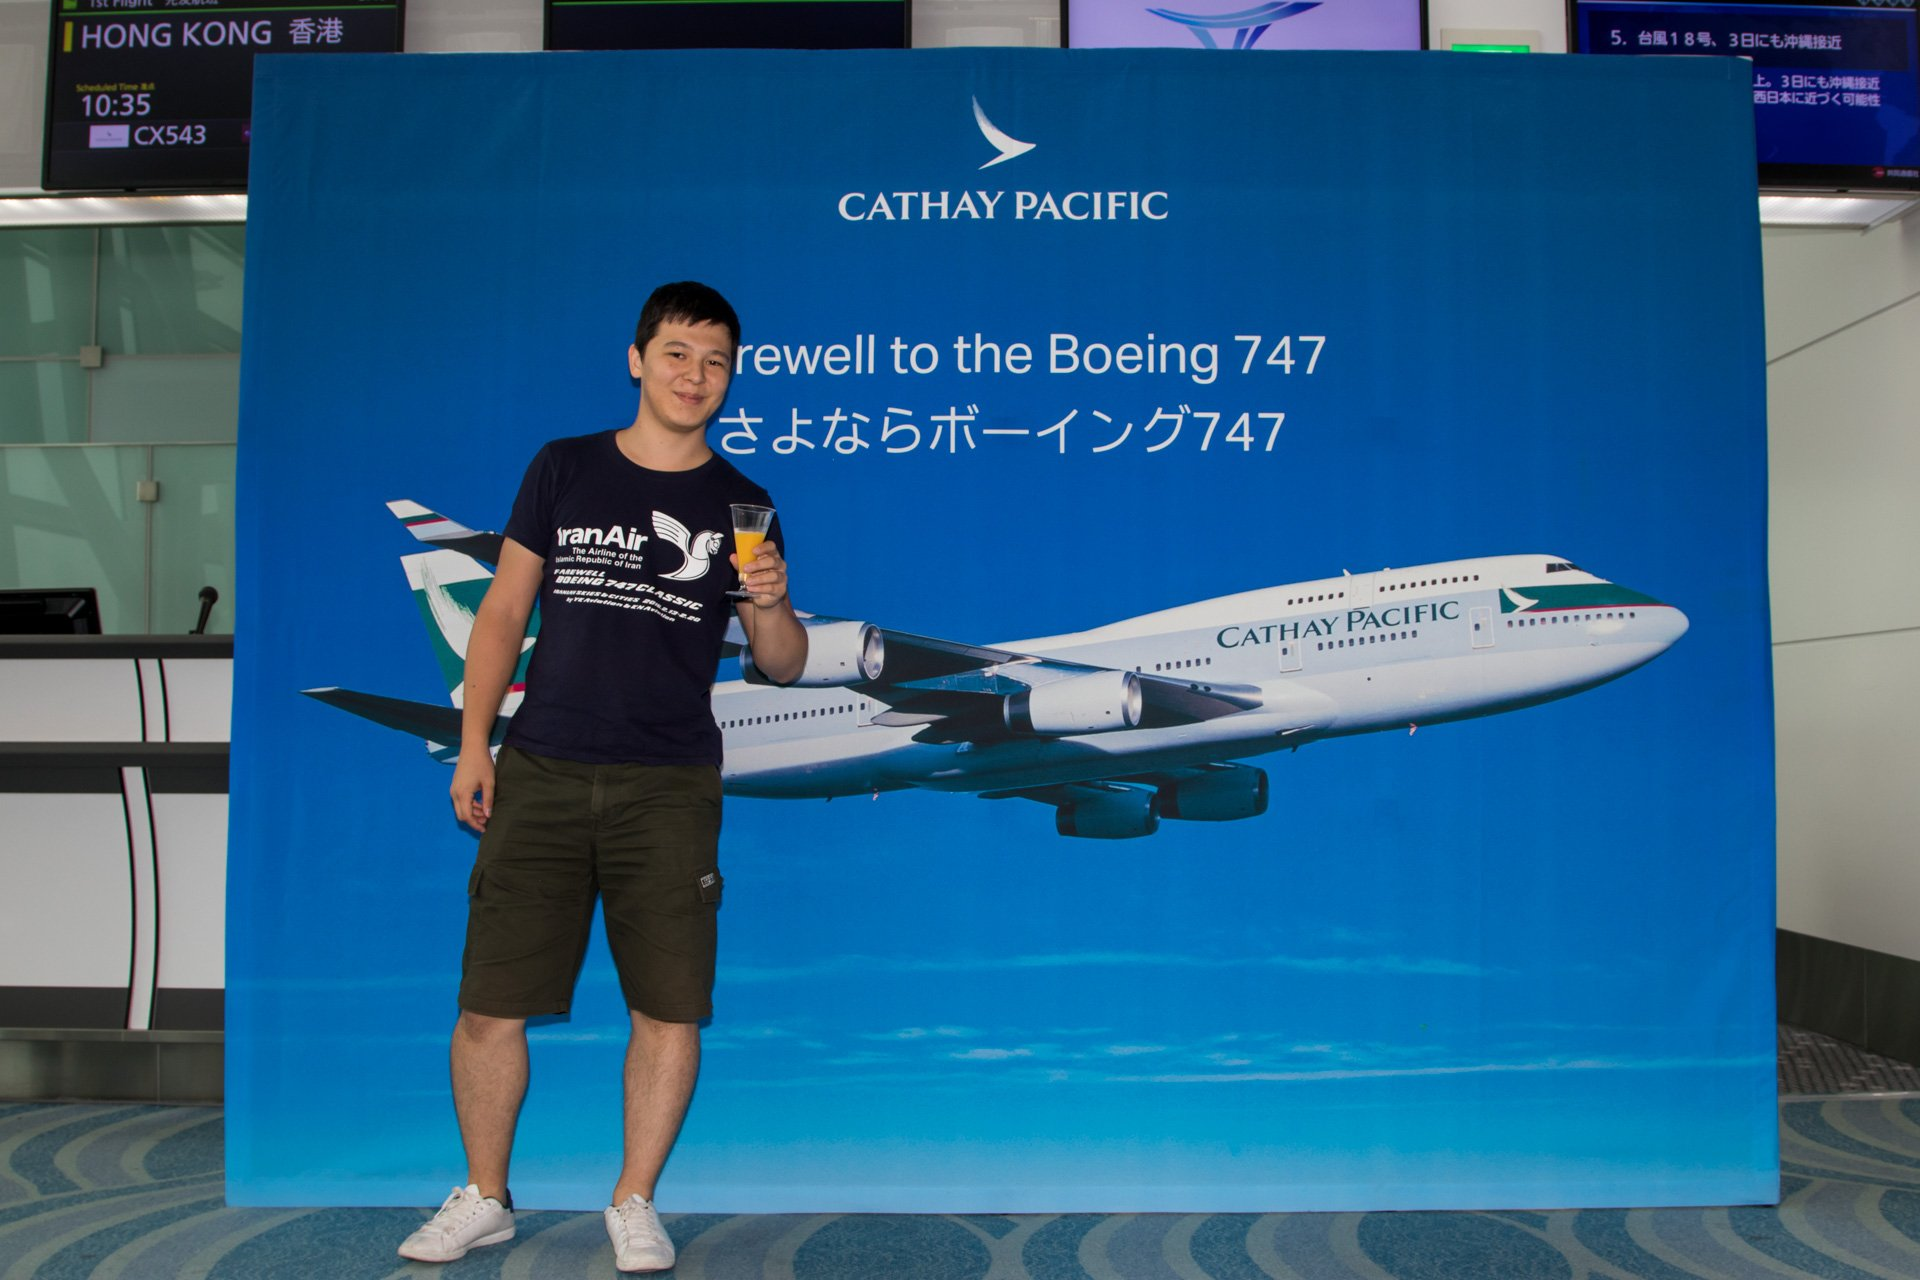 Cathay Pacific 747